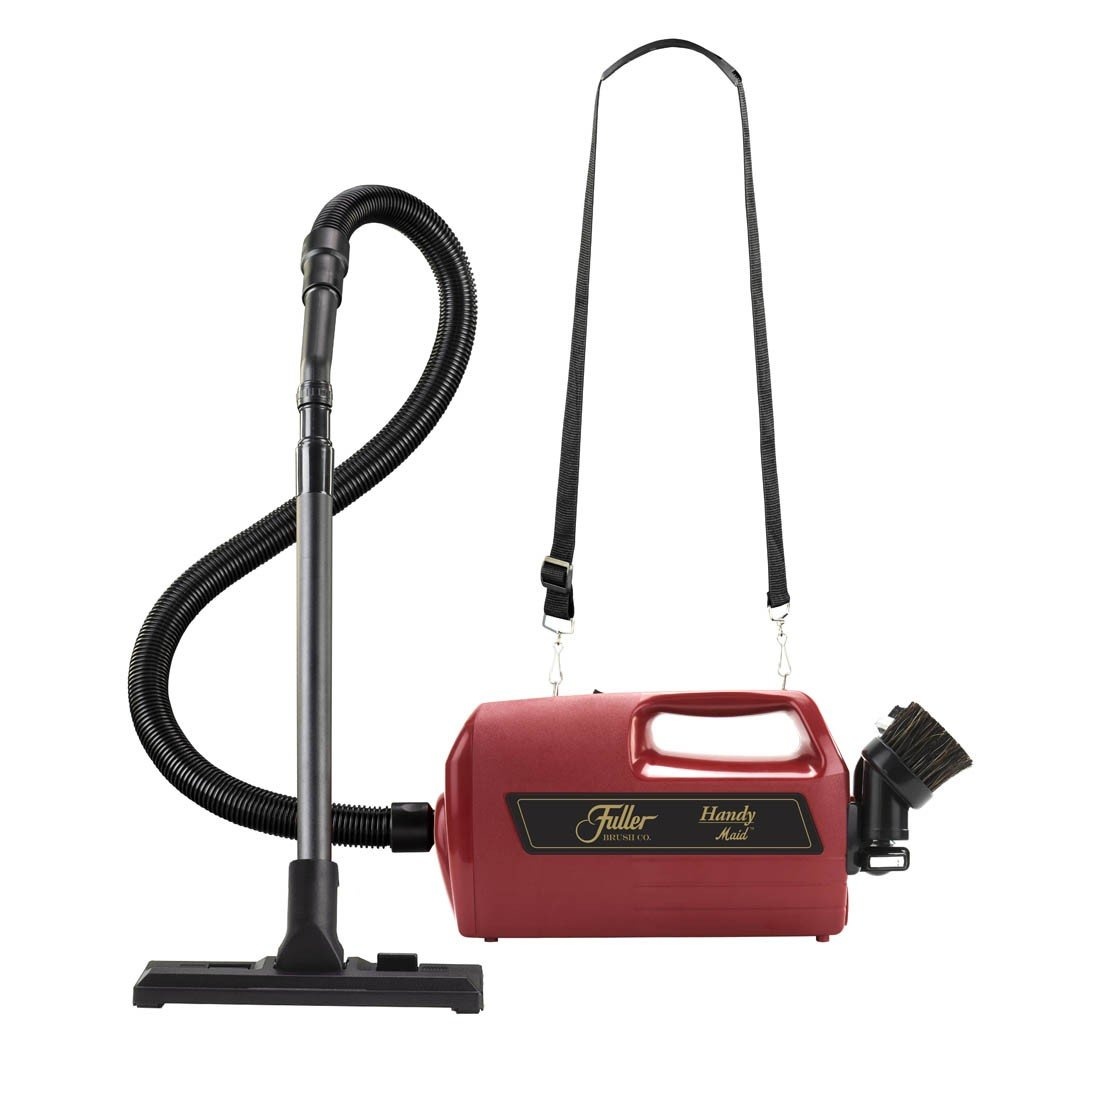 Handy Maid Portable Canister Vacuum